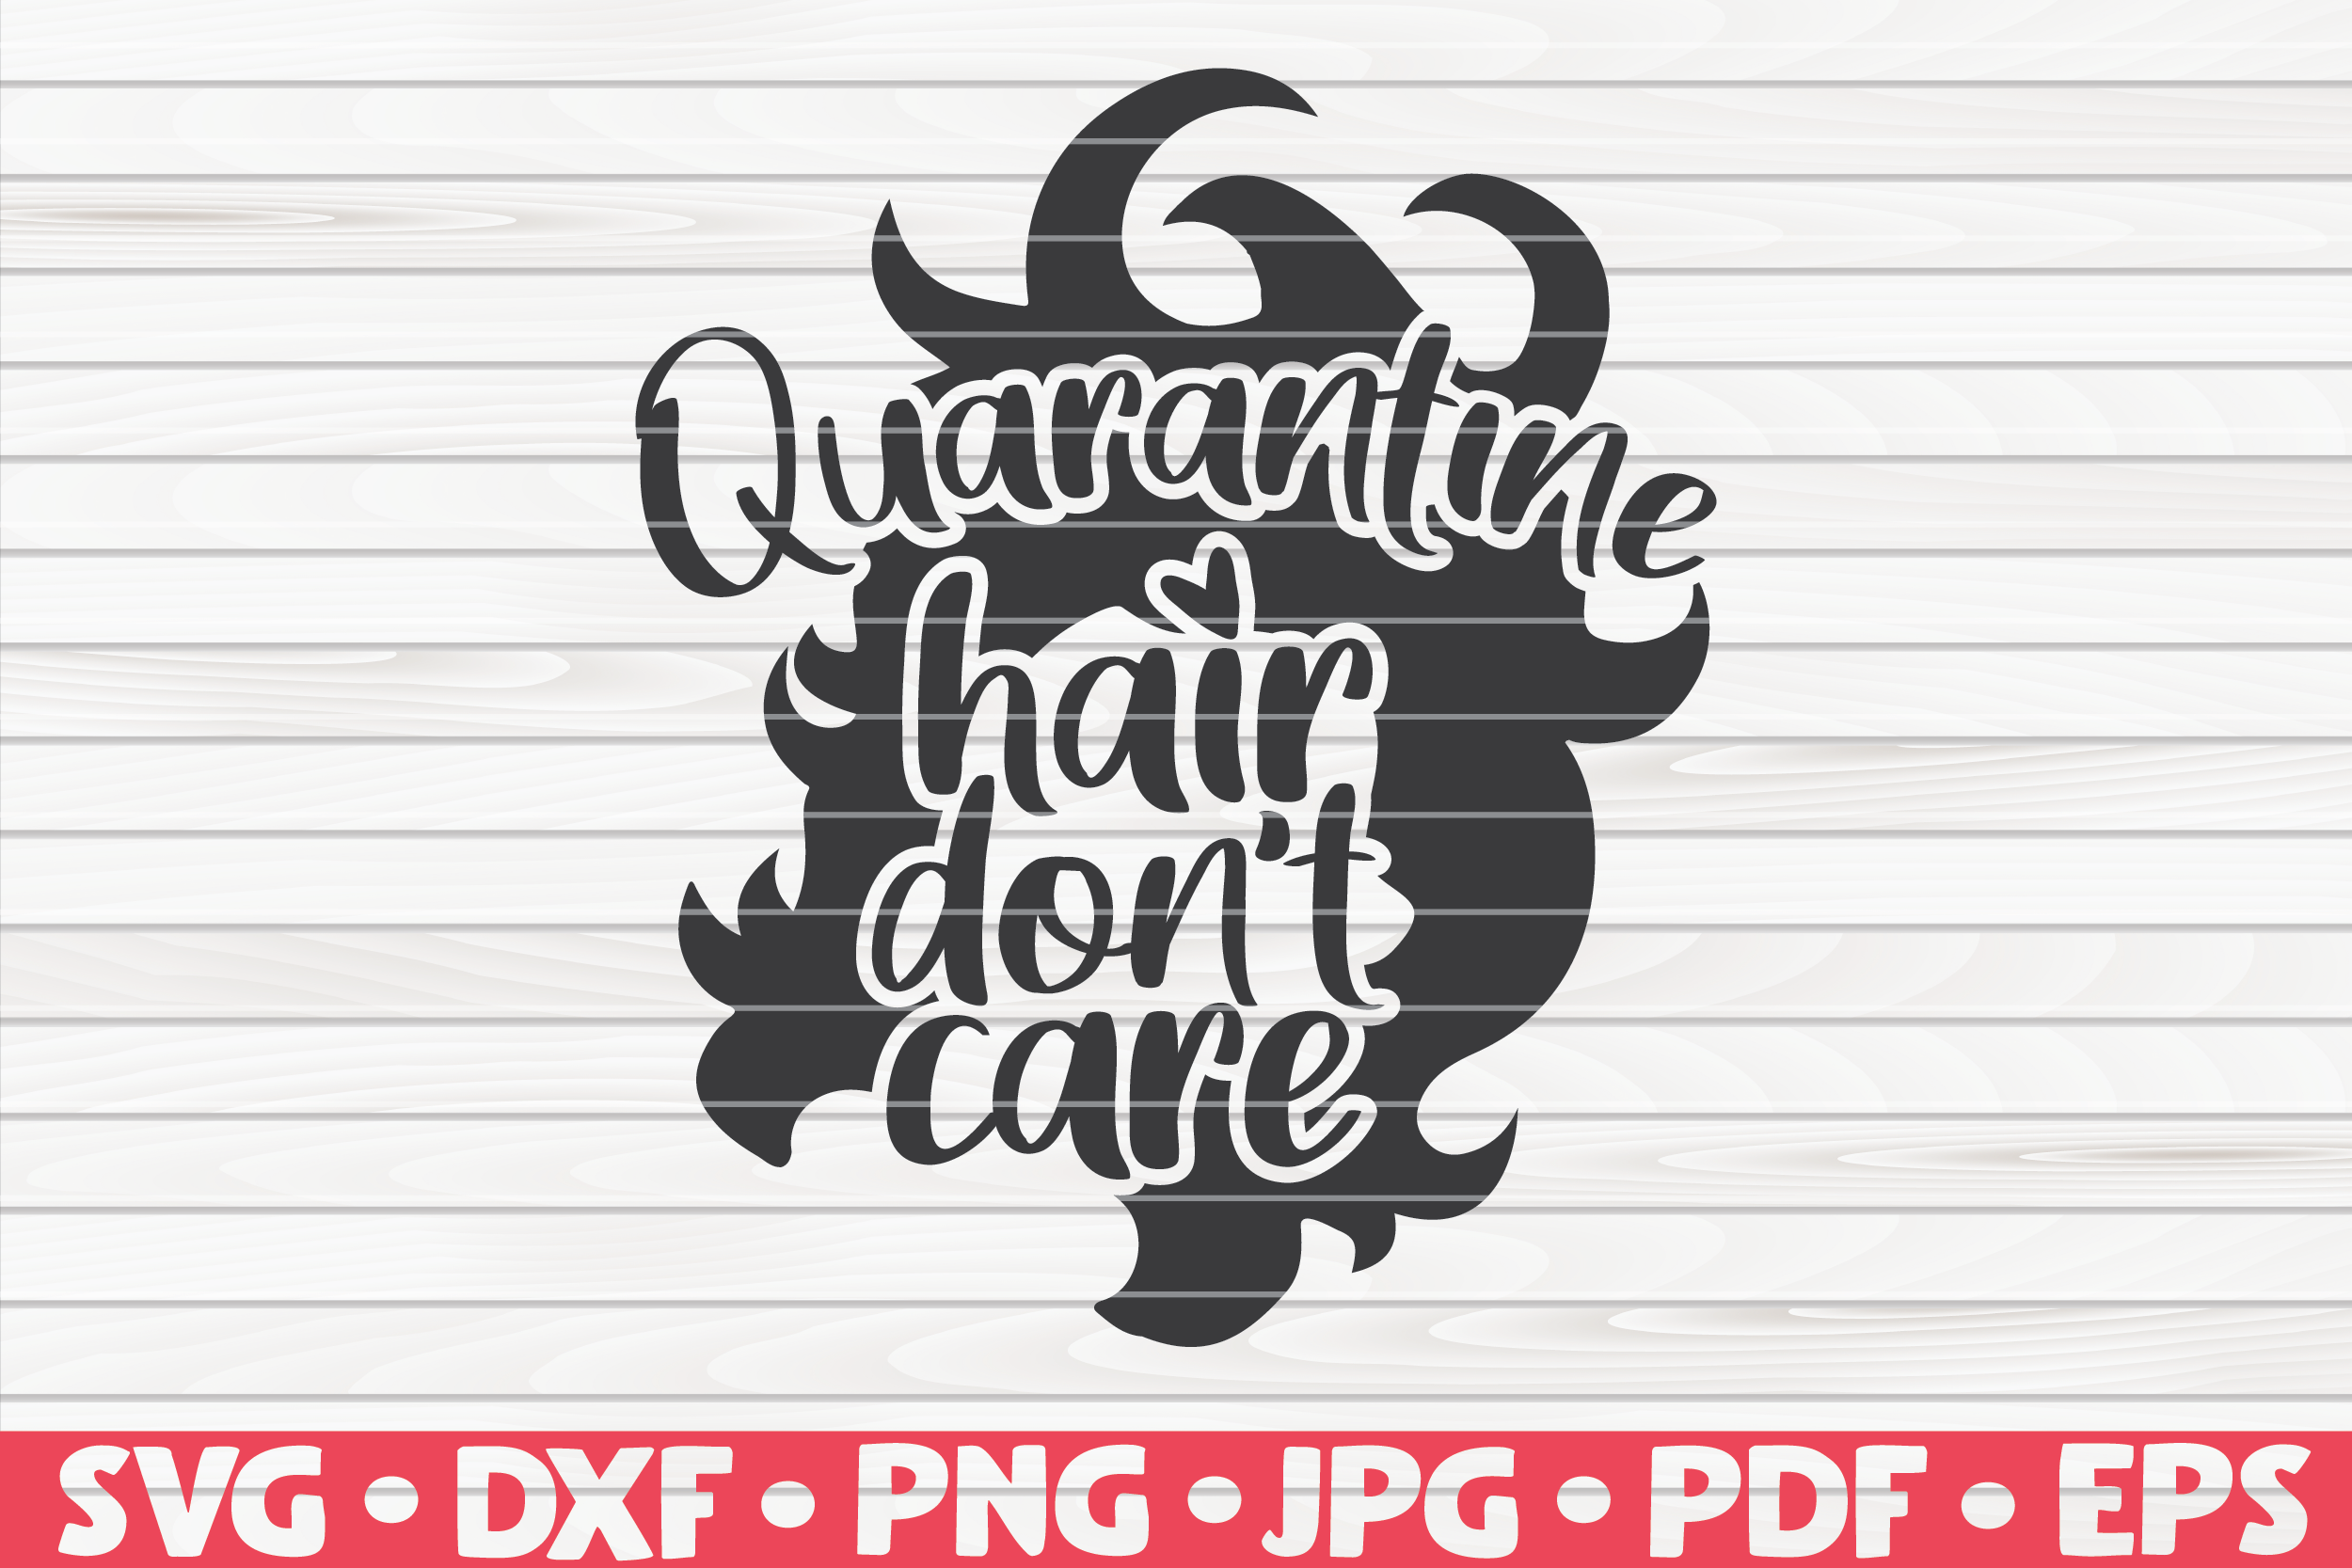 Download Free Quarantine Hair Don T Care Graphic By Mihaibadea95 Creative for Cricut Explore, Silhouette and other cutting machines.